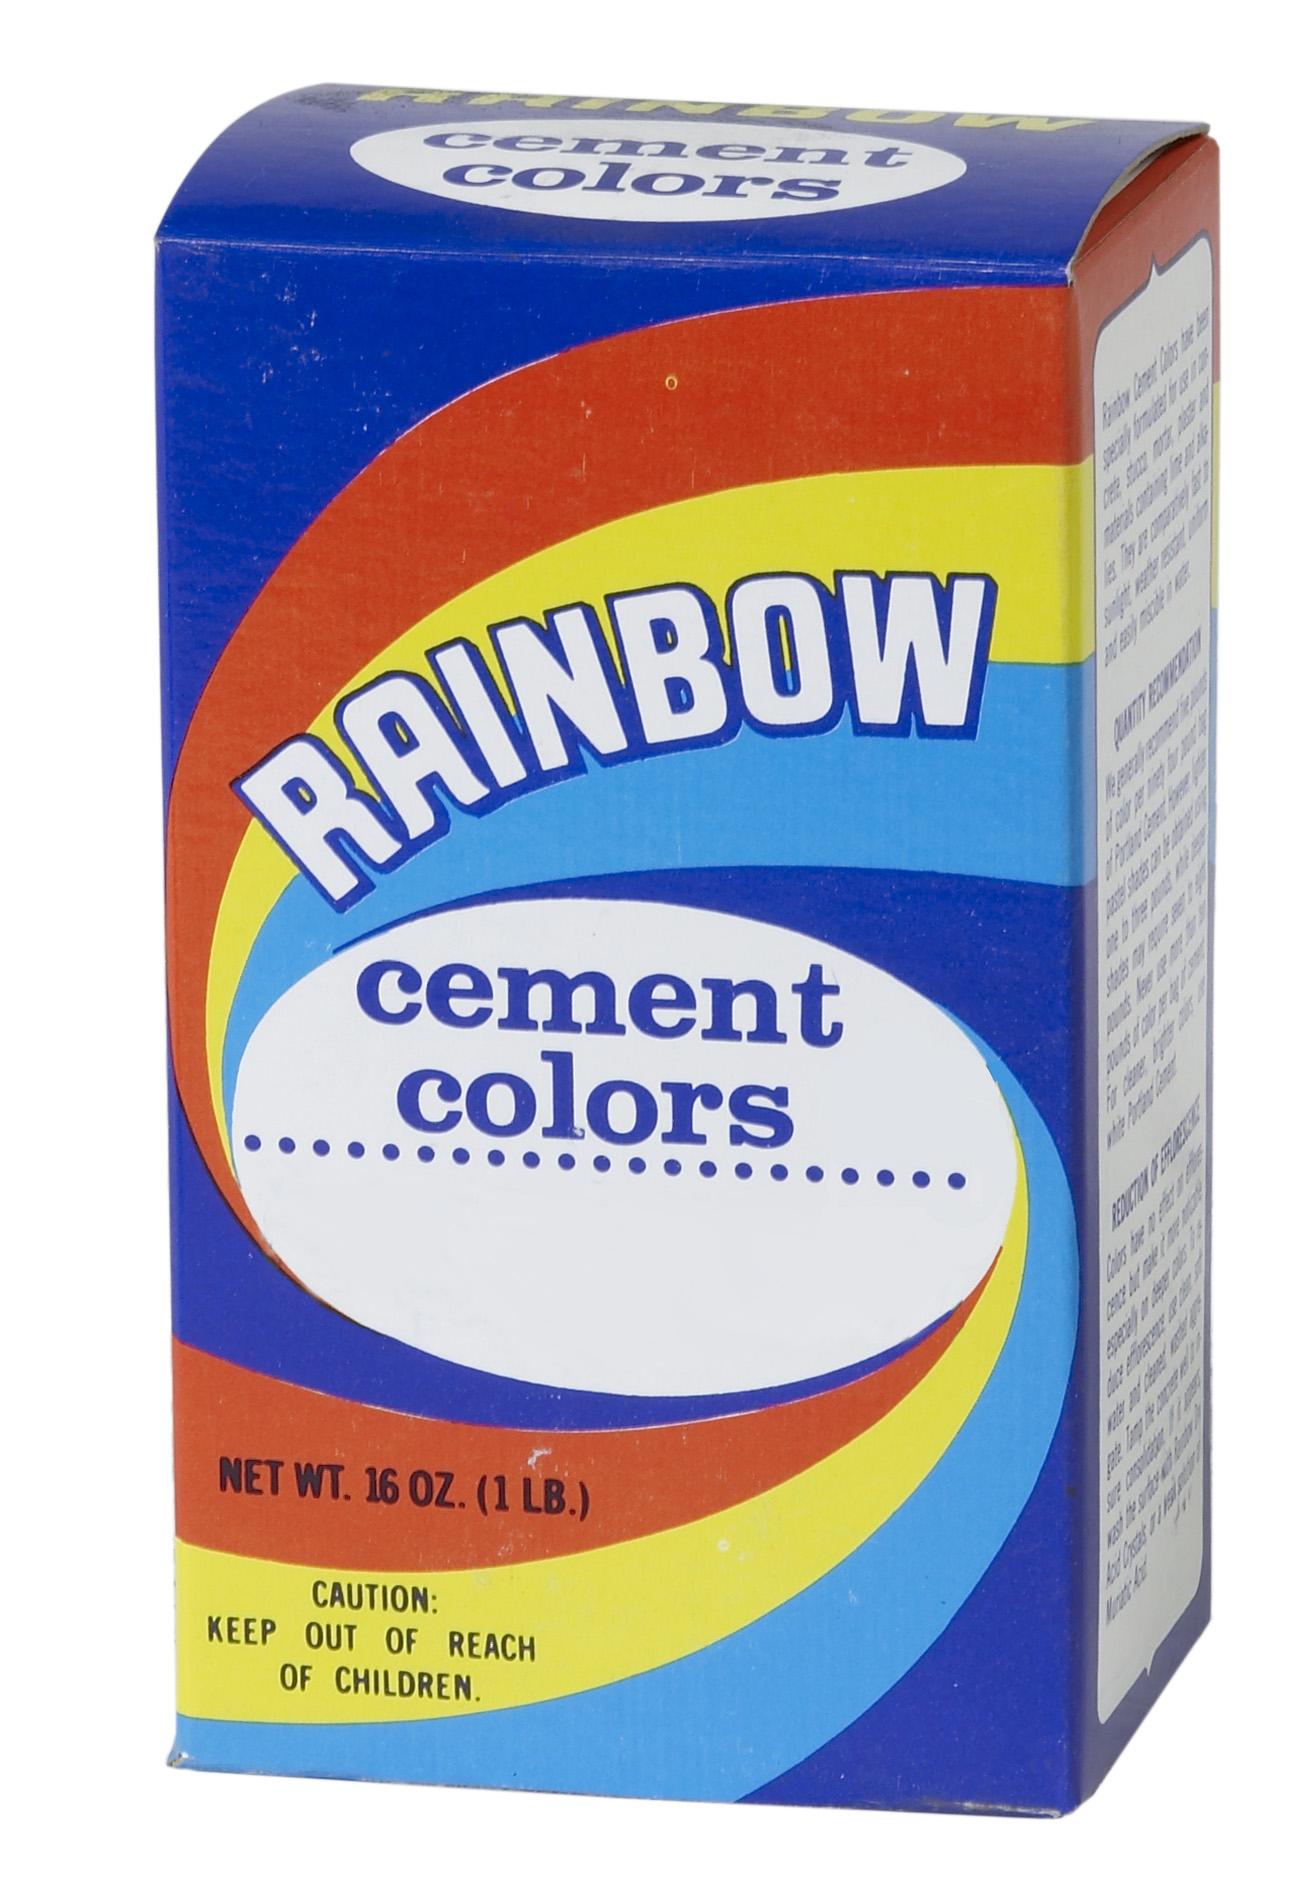 9010-0-1, 1 lb Box of Rainbow Color - Yellow Orchre, Mutual Industries